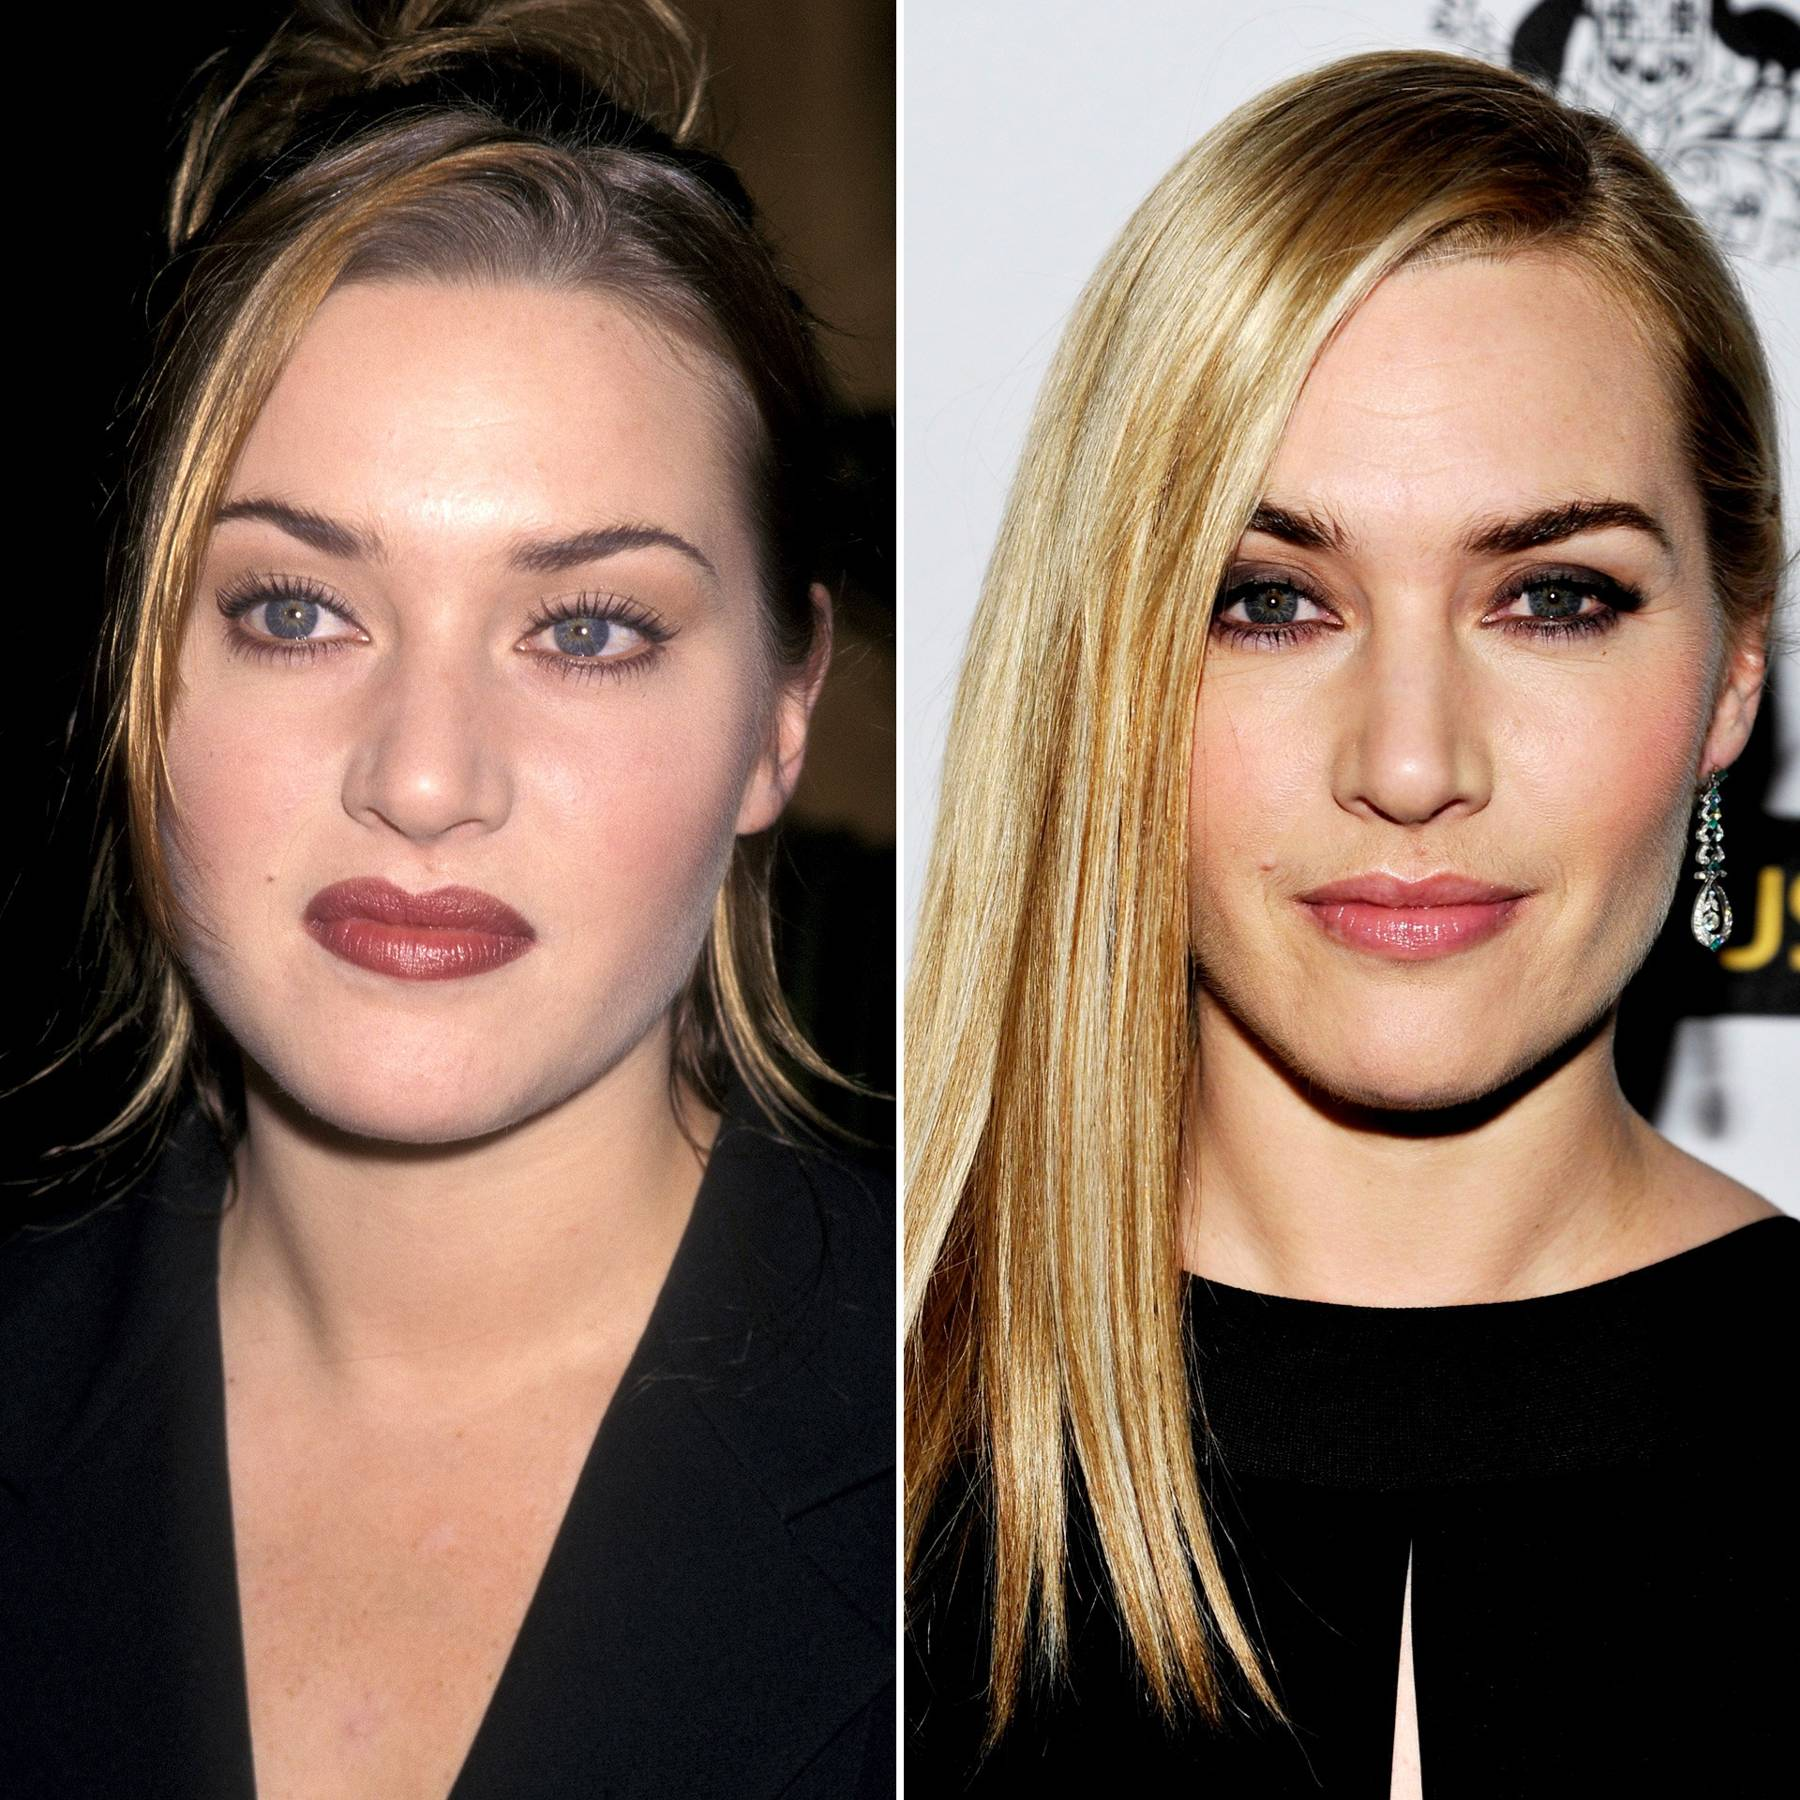 Forum on this topic: Major Celebrity Eyebrow Transformations, major-celebrity-eyebrow-transformations/